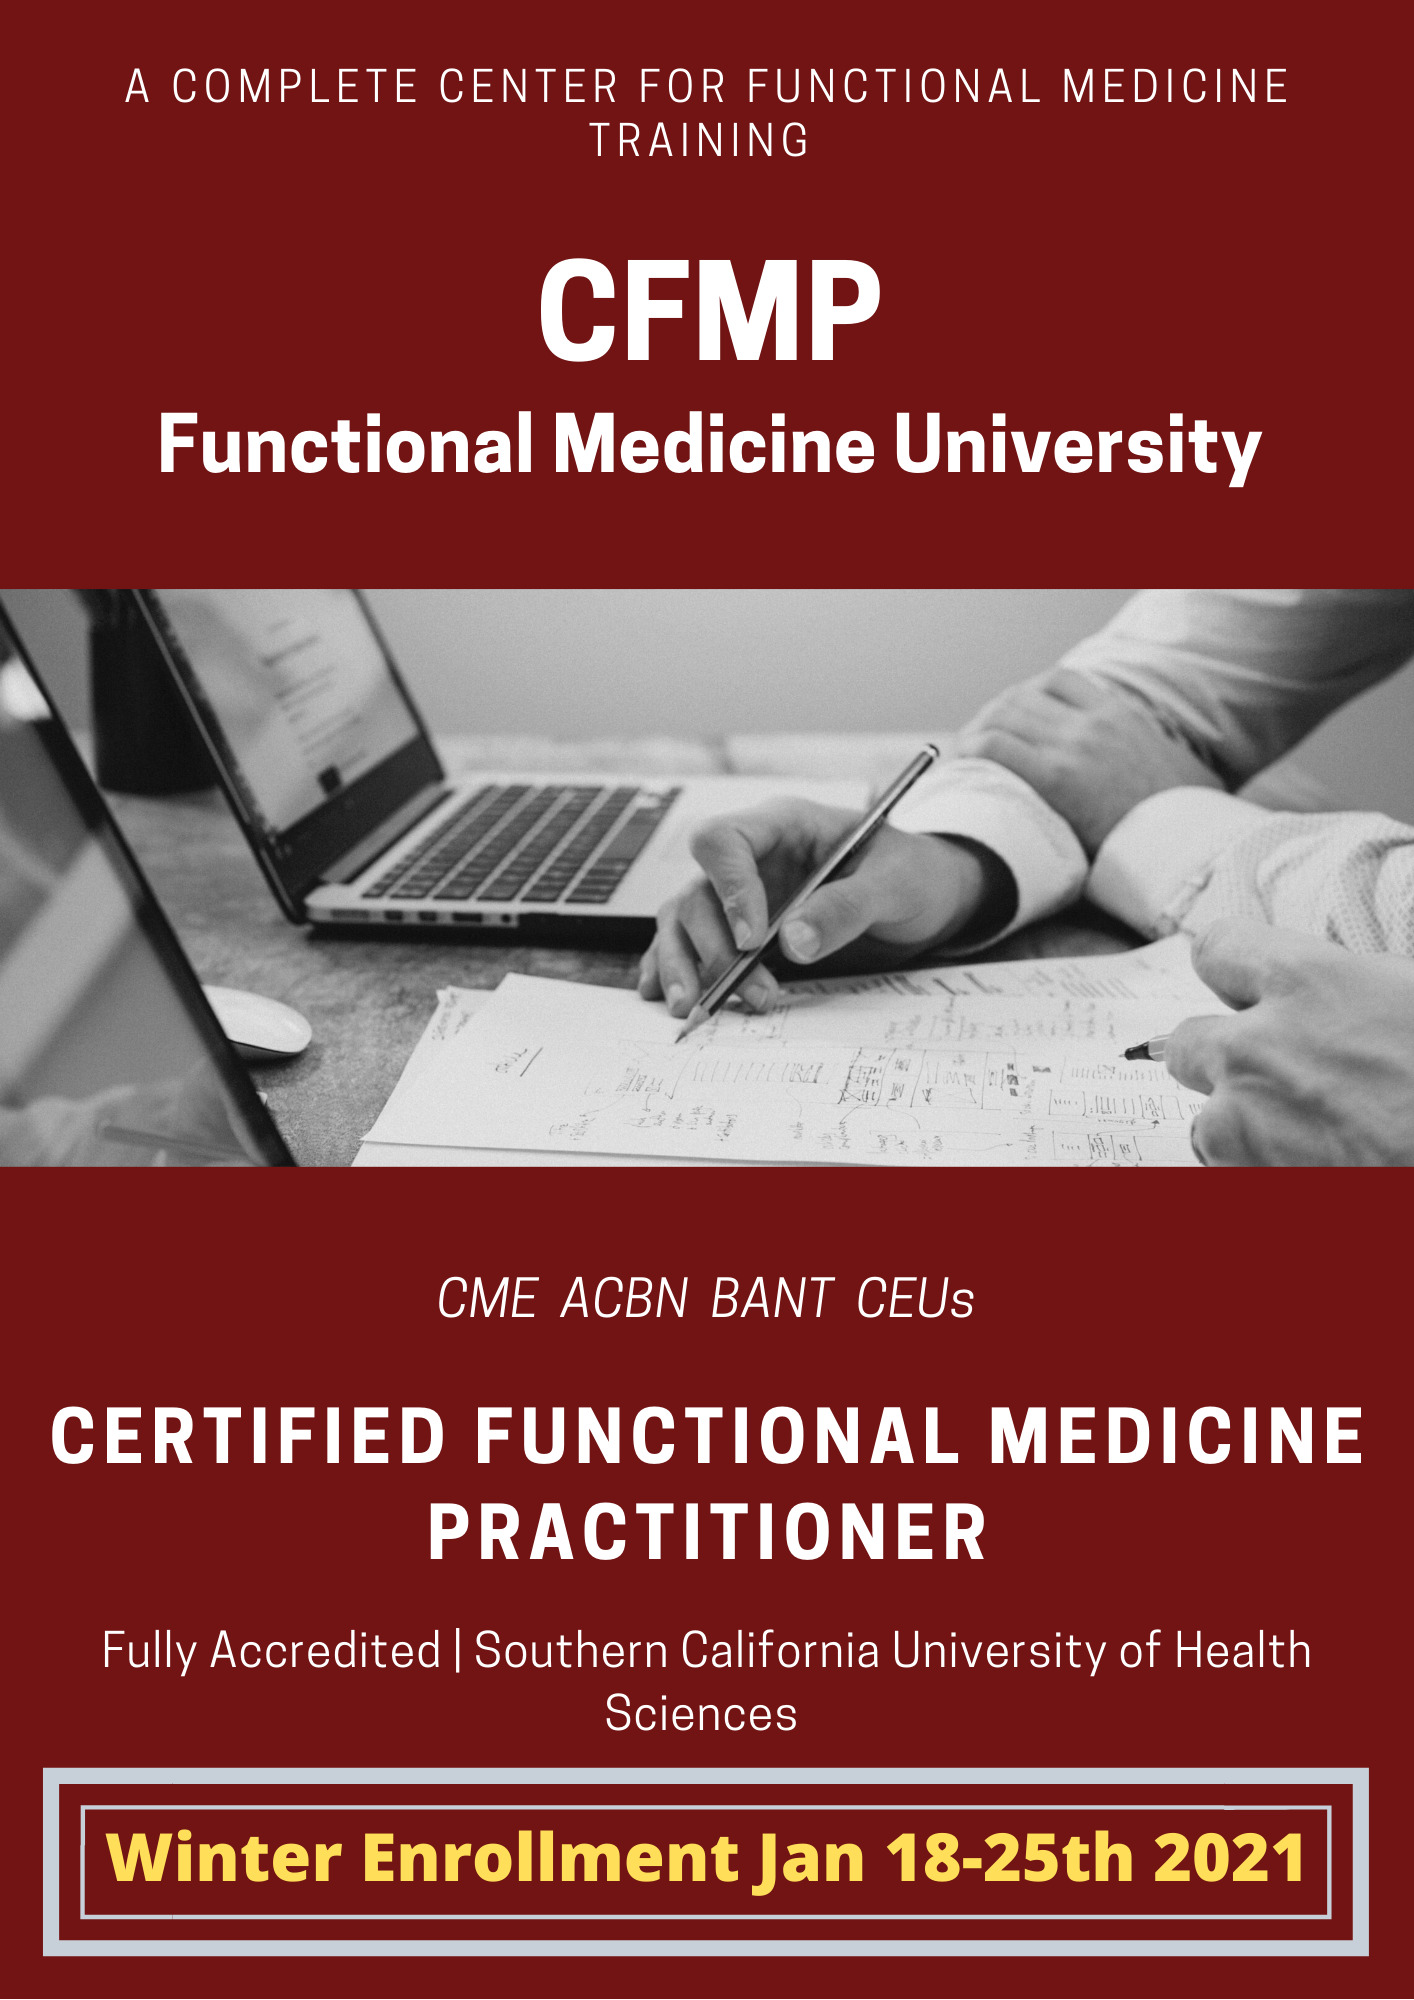 winter enrollment functional medicine university Jan 2021 CFMP